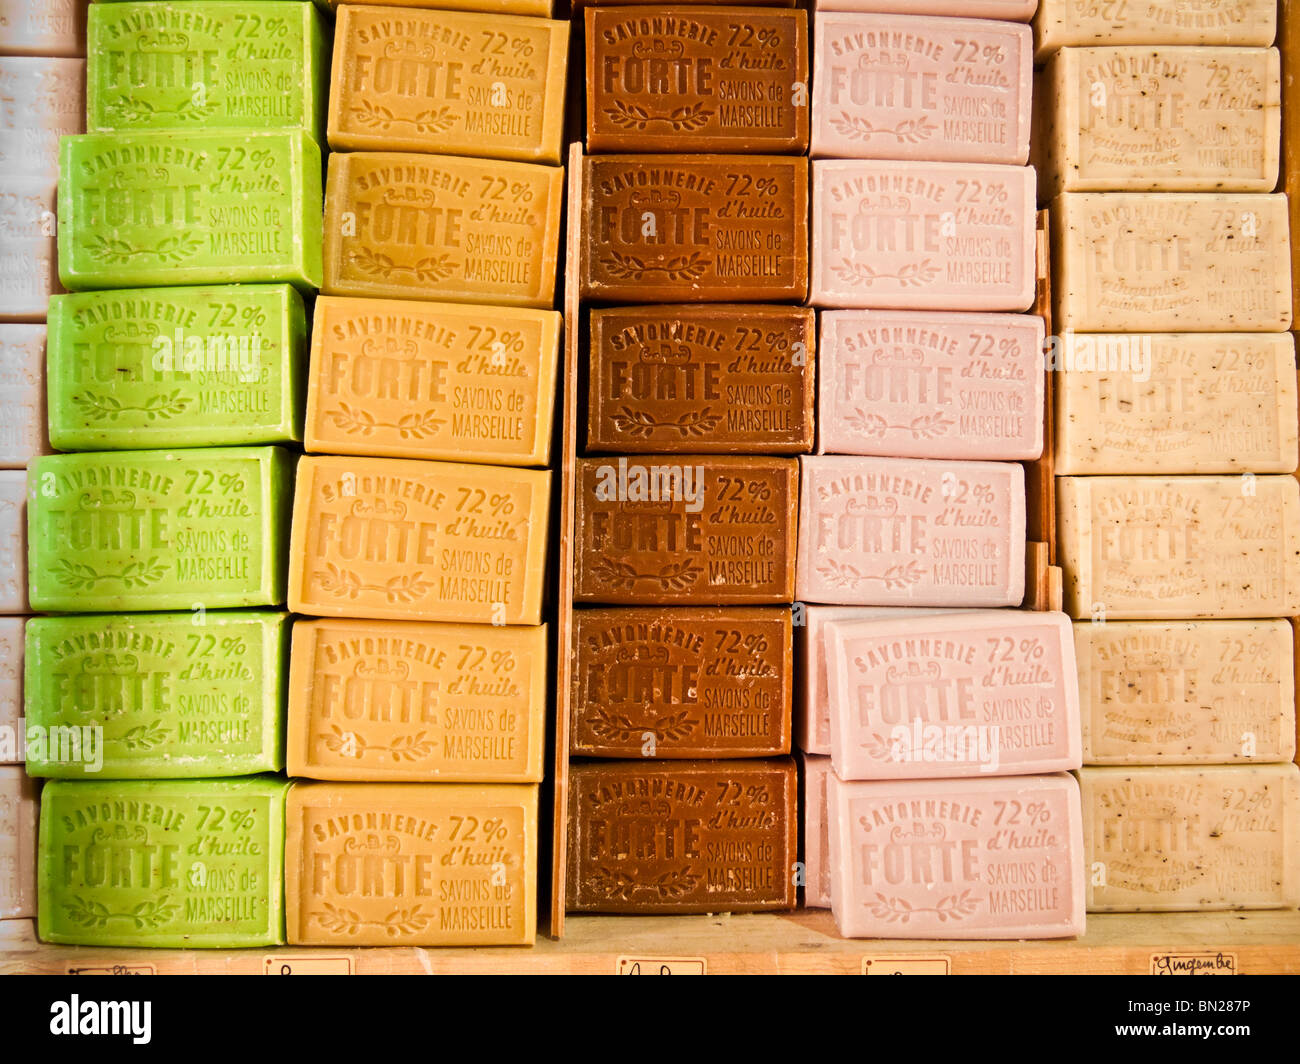 Bars of handmade soap,Nice,Cote d,Azur,France - Stock Image